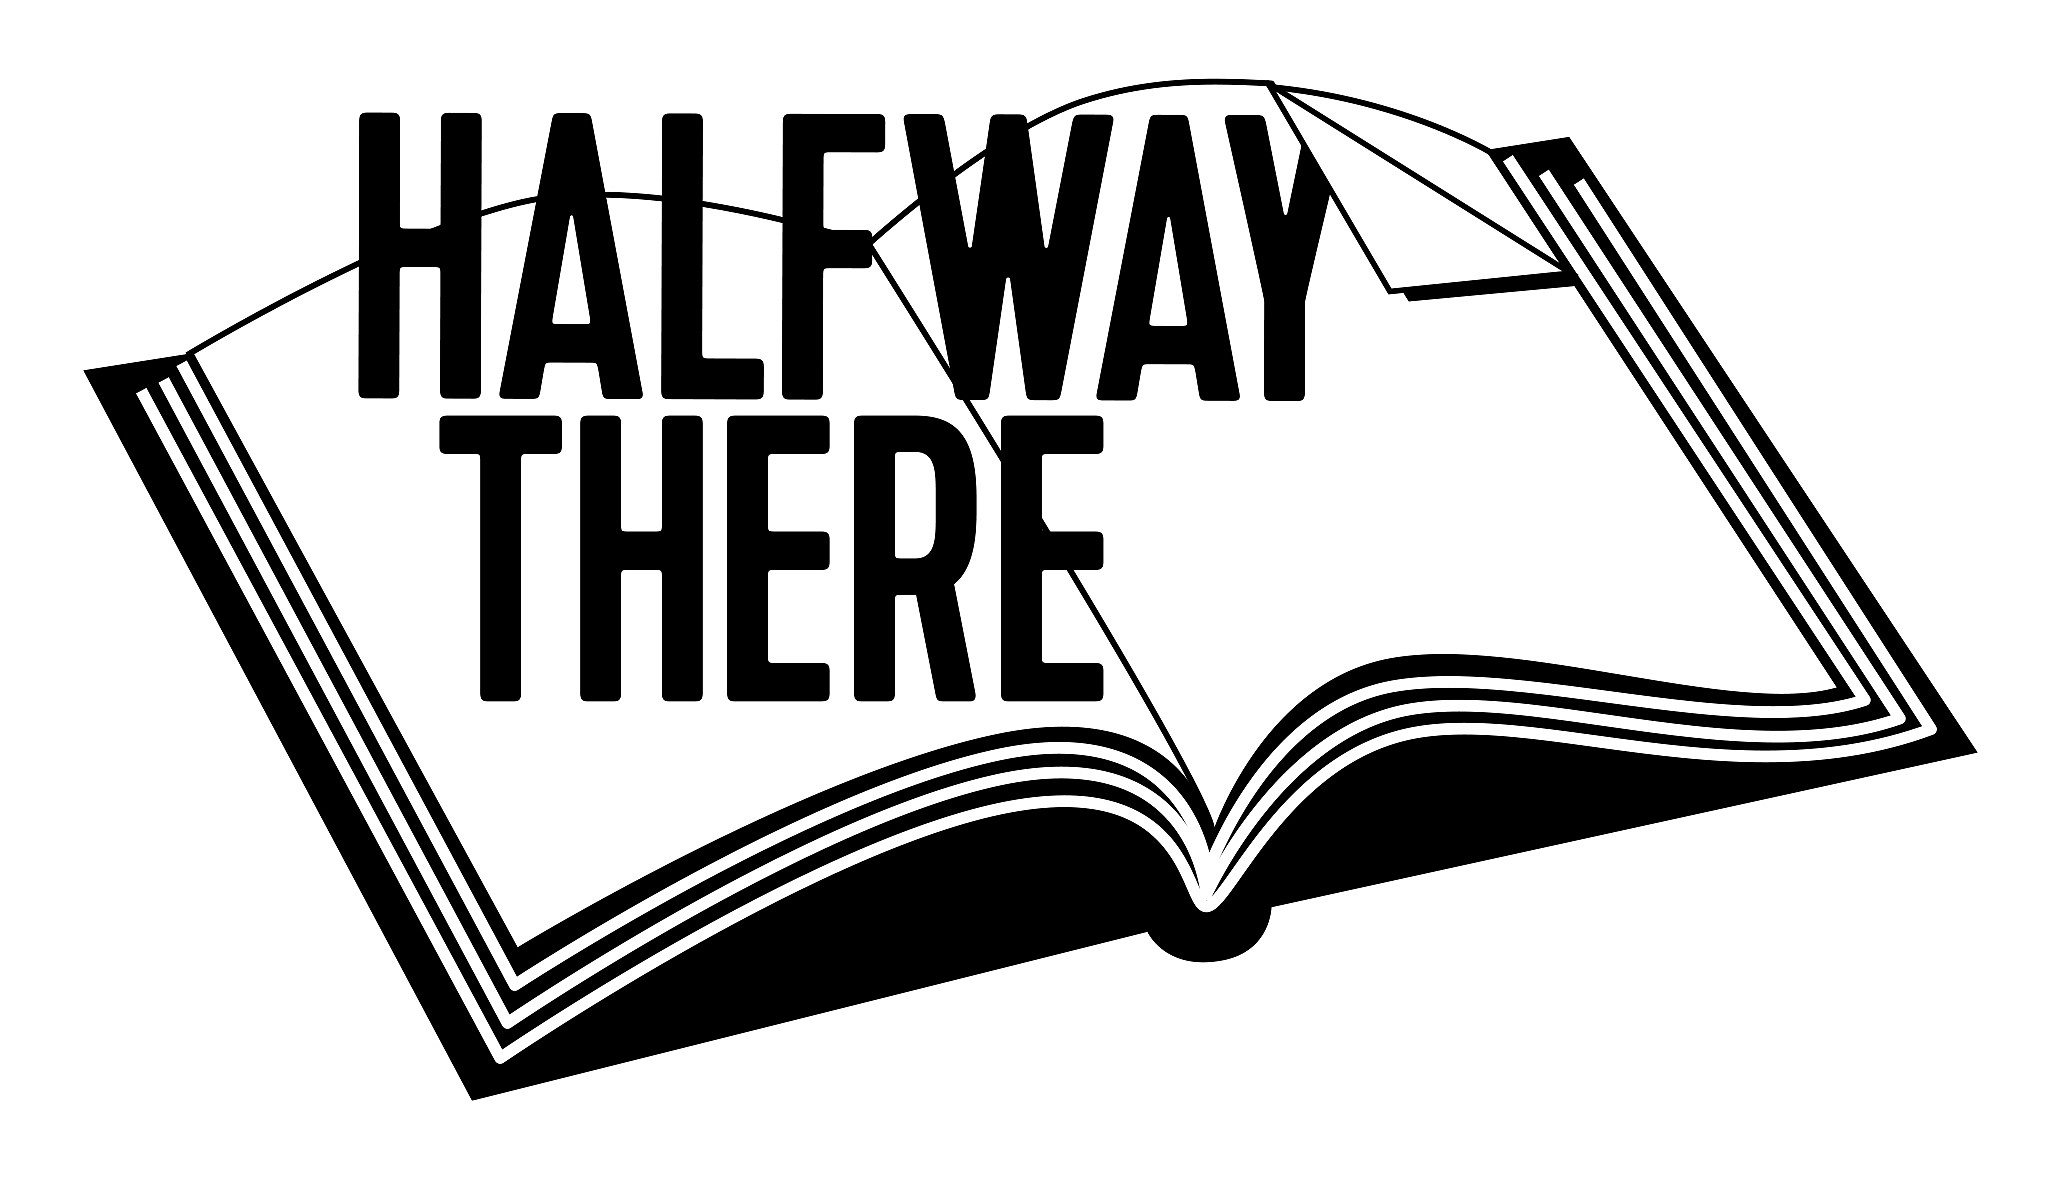 Culture in brief: Halfway There series Monday, Jan. 22